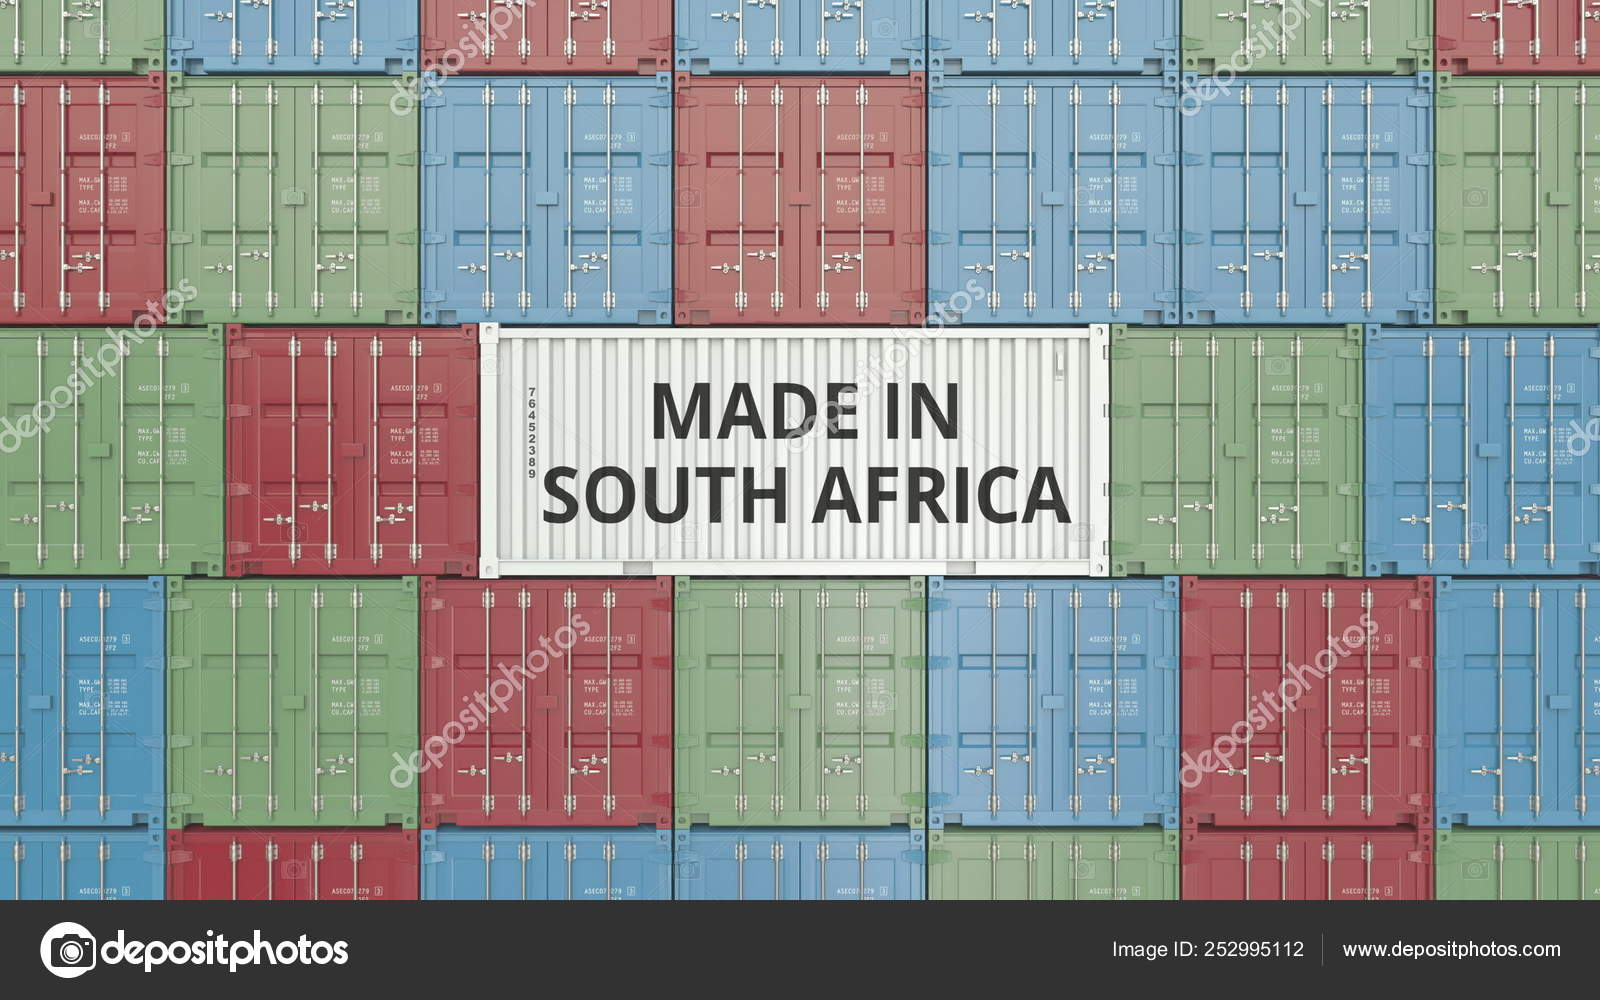 Container with MADE IN SOUTH AFRICA text  Import or export related